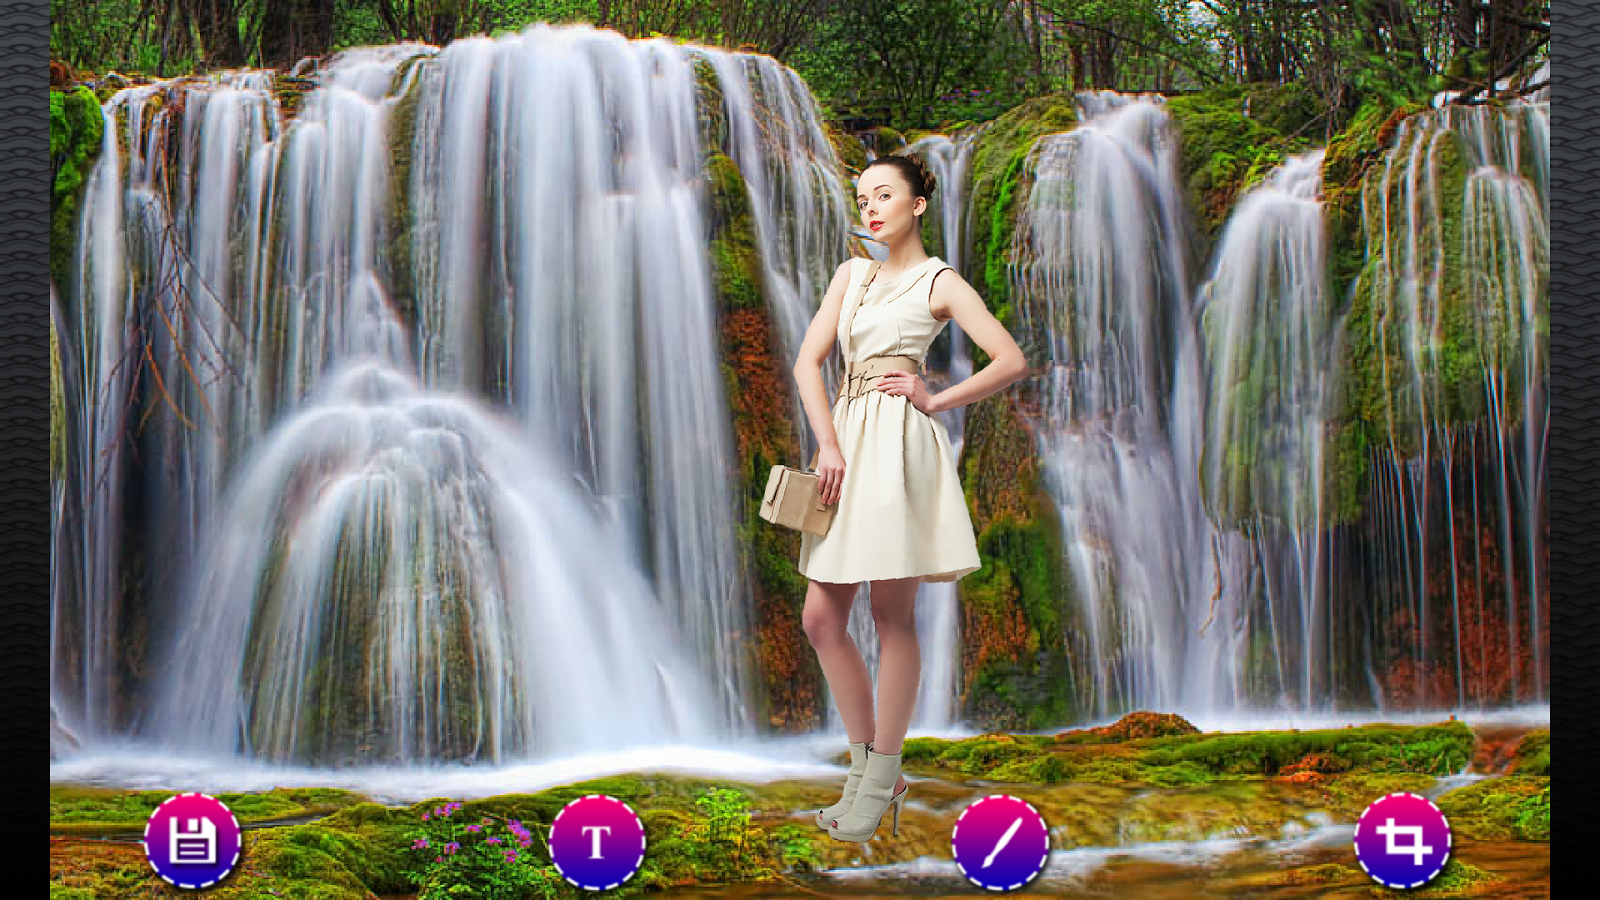 Photo Backgrounds Android Apps On Google Play. Searching For Portrait Photo  Editing Services Online ...